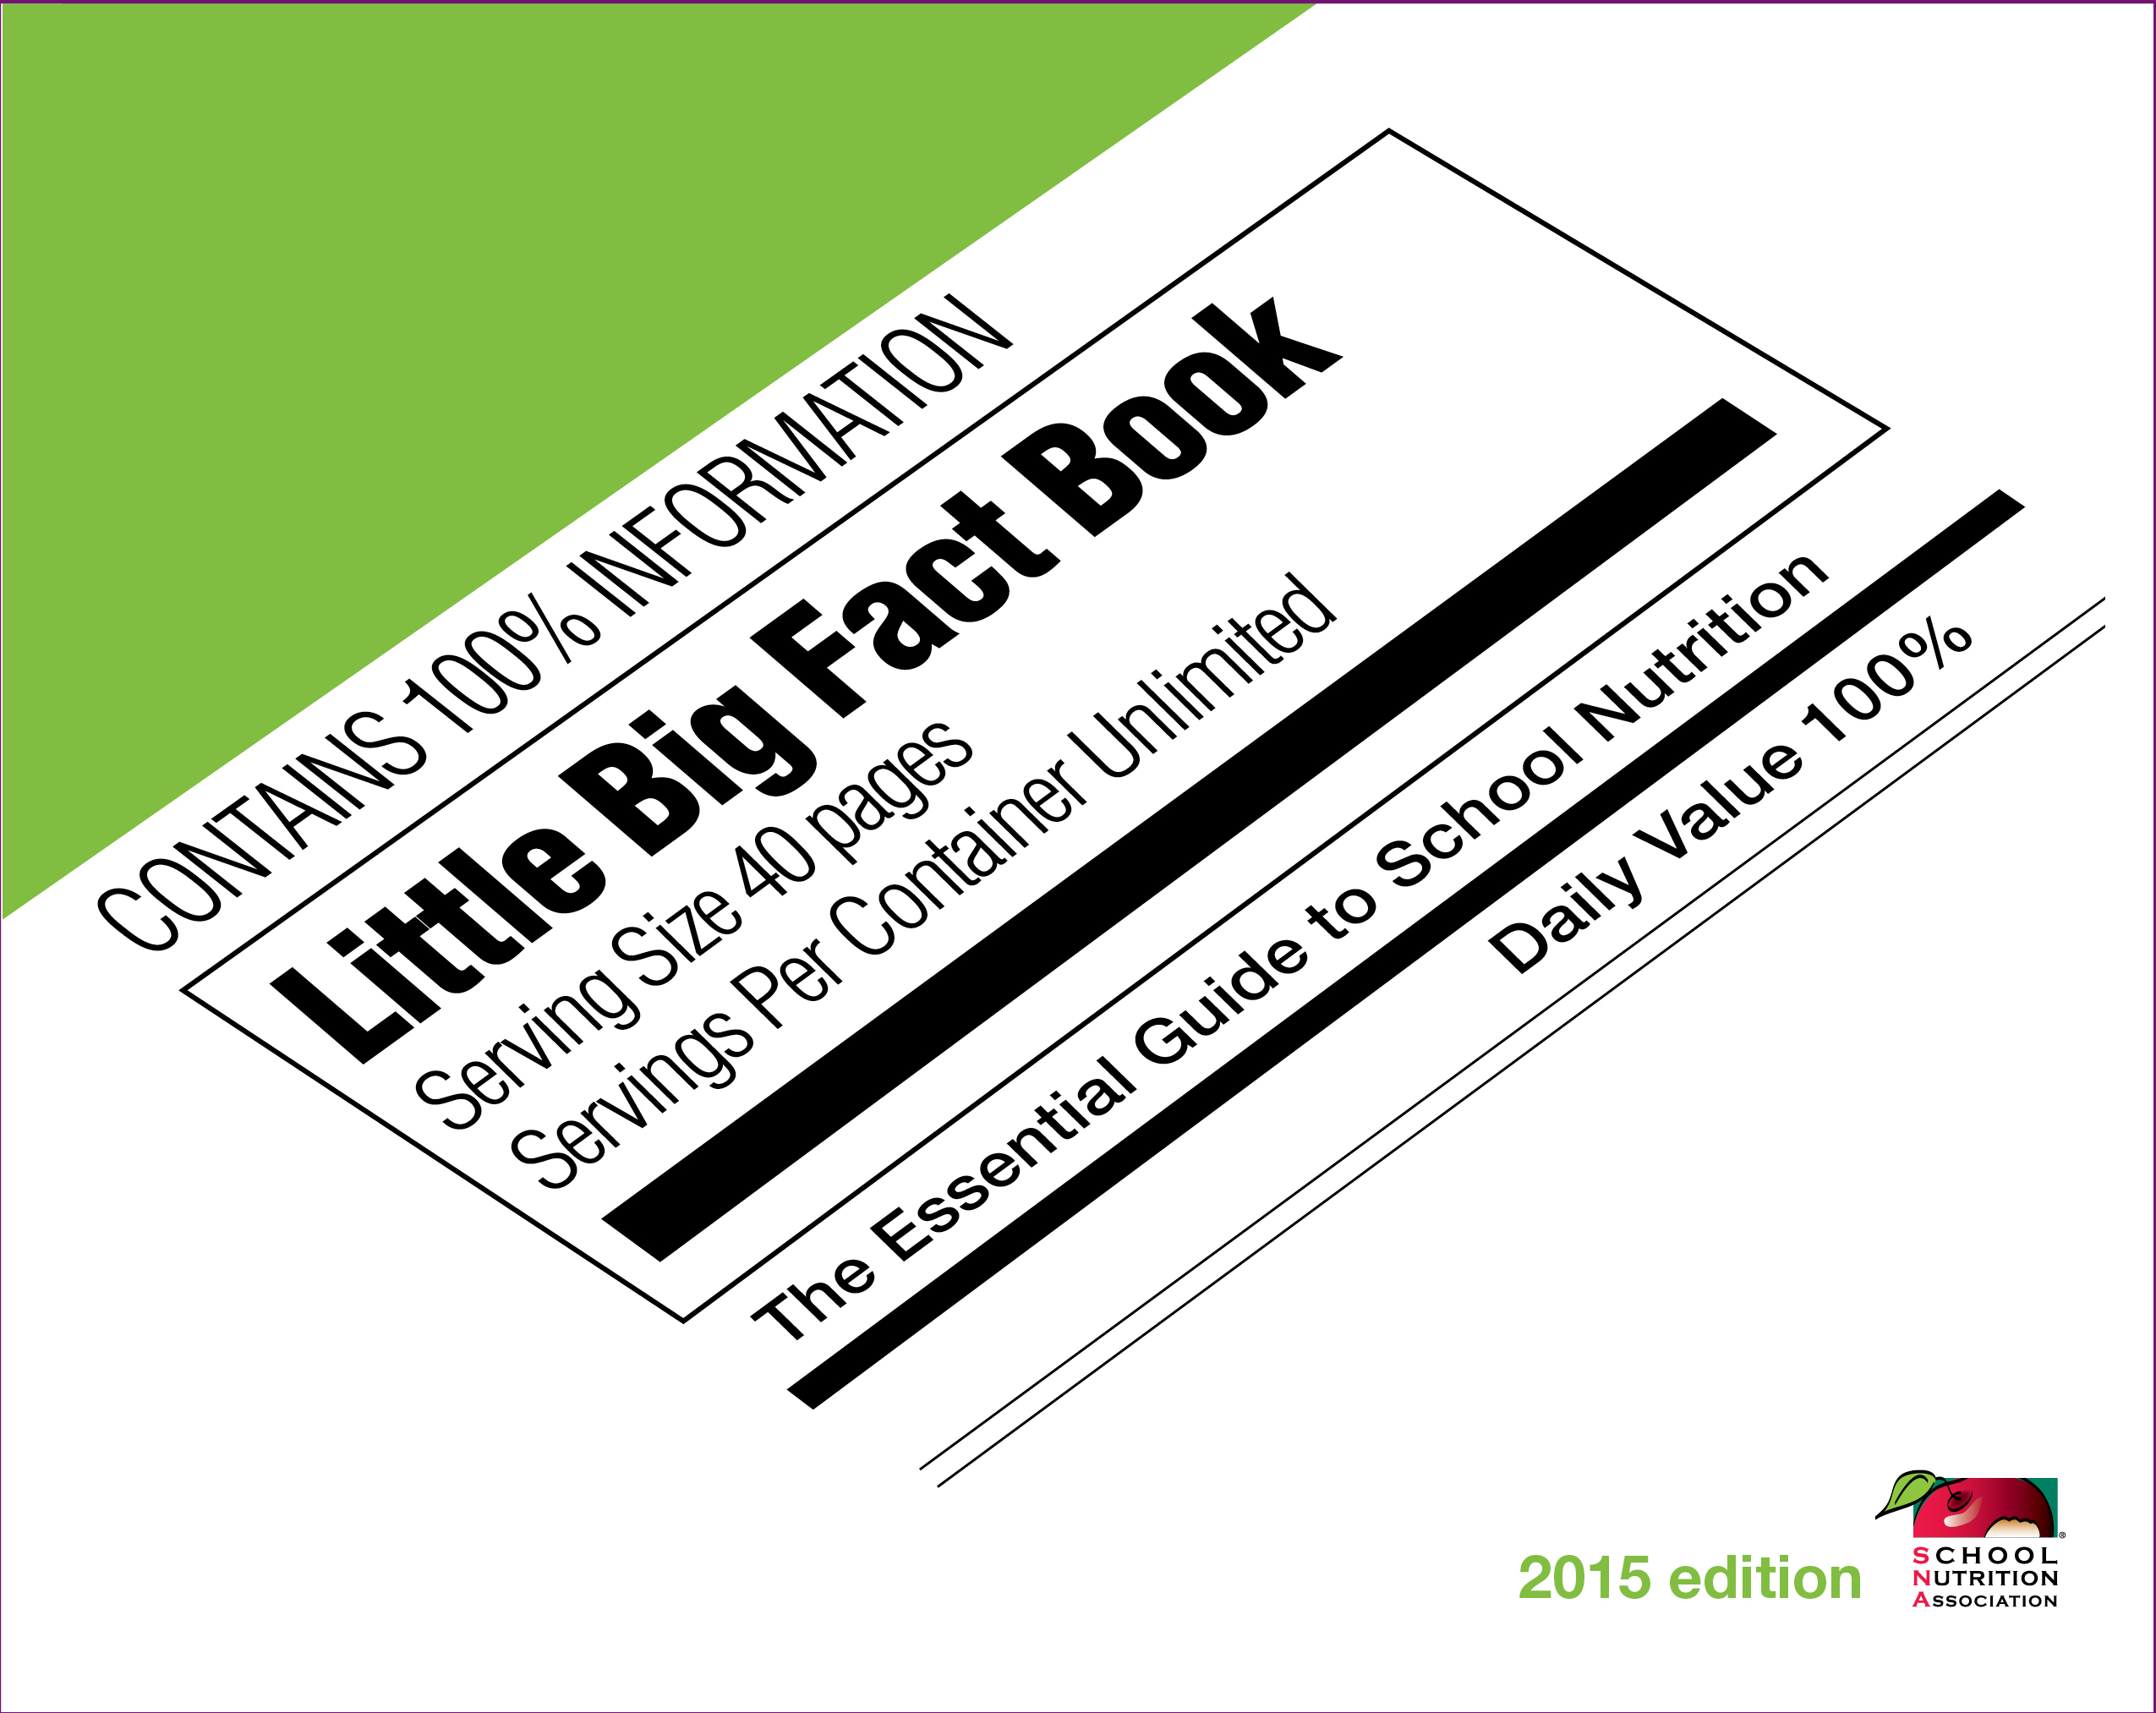 2013 Little Big Fact Book Cover.jpg